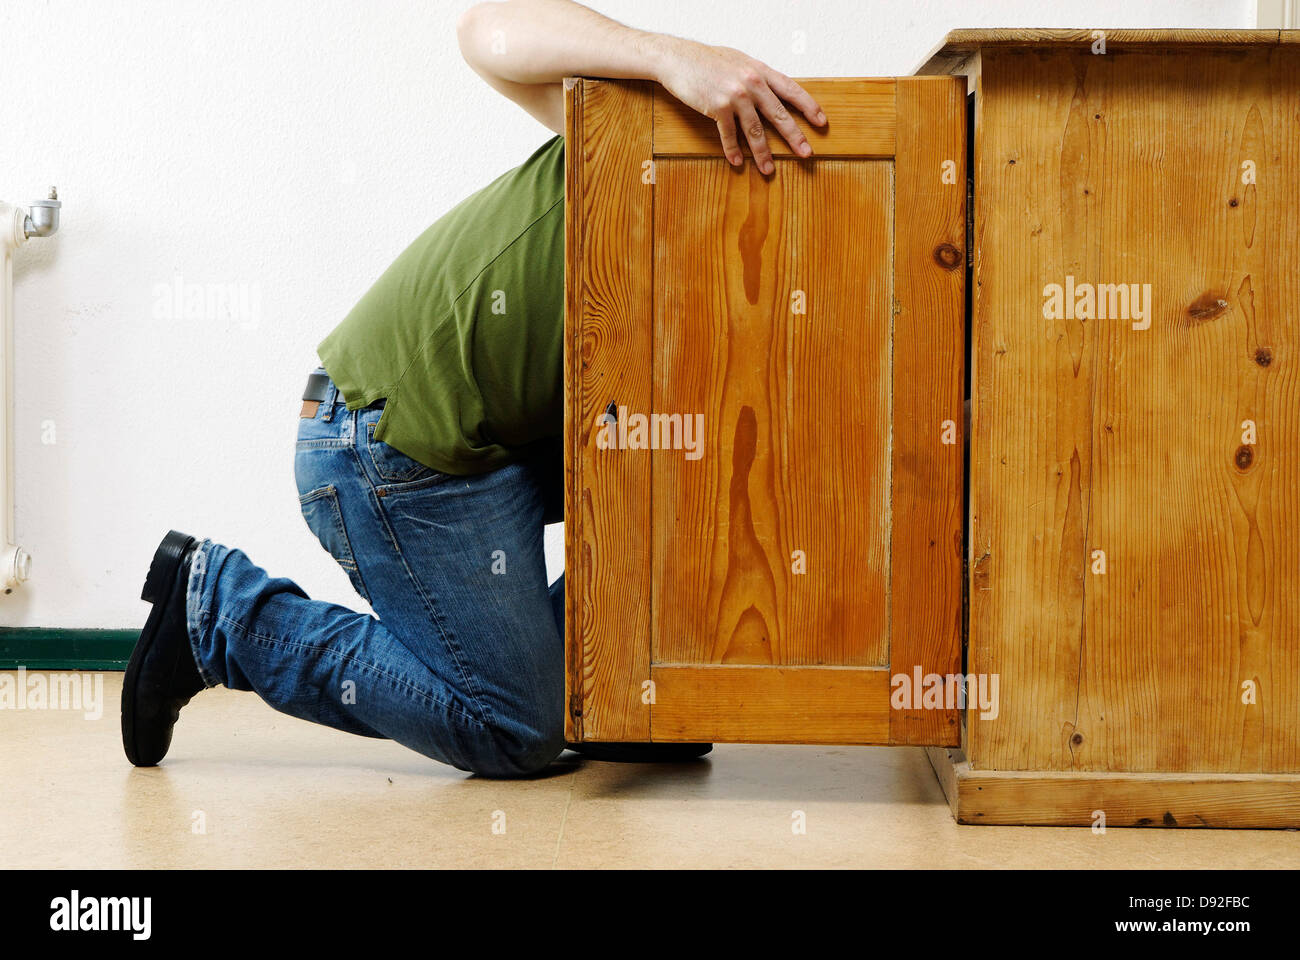 Man Is Looking Inside A Cabinet Stock Photo 57218992 Alamy